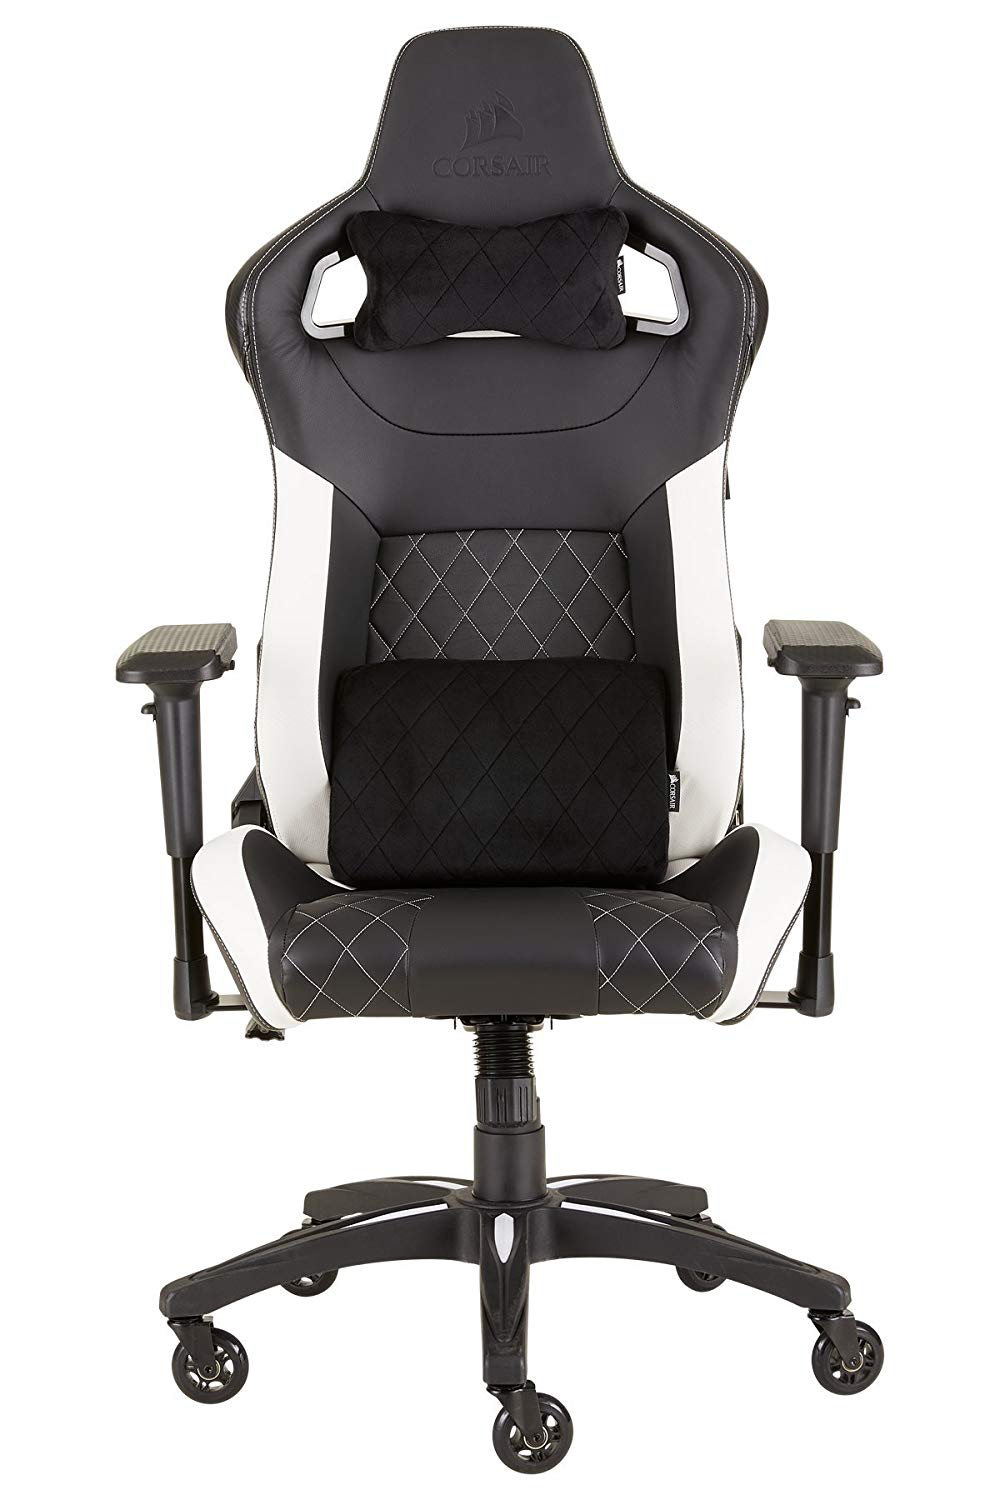 CORSAIR T1 RACE Gaming Chair - $276.49 - $73.50 off or 21%